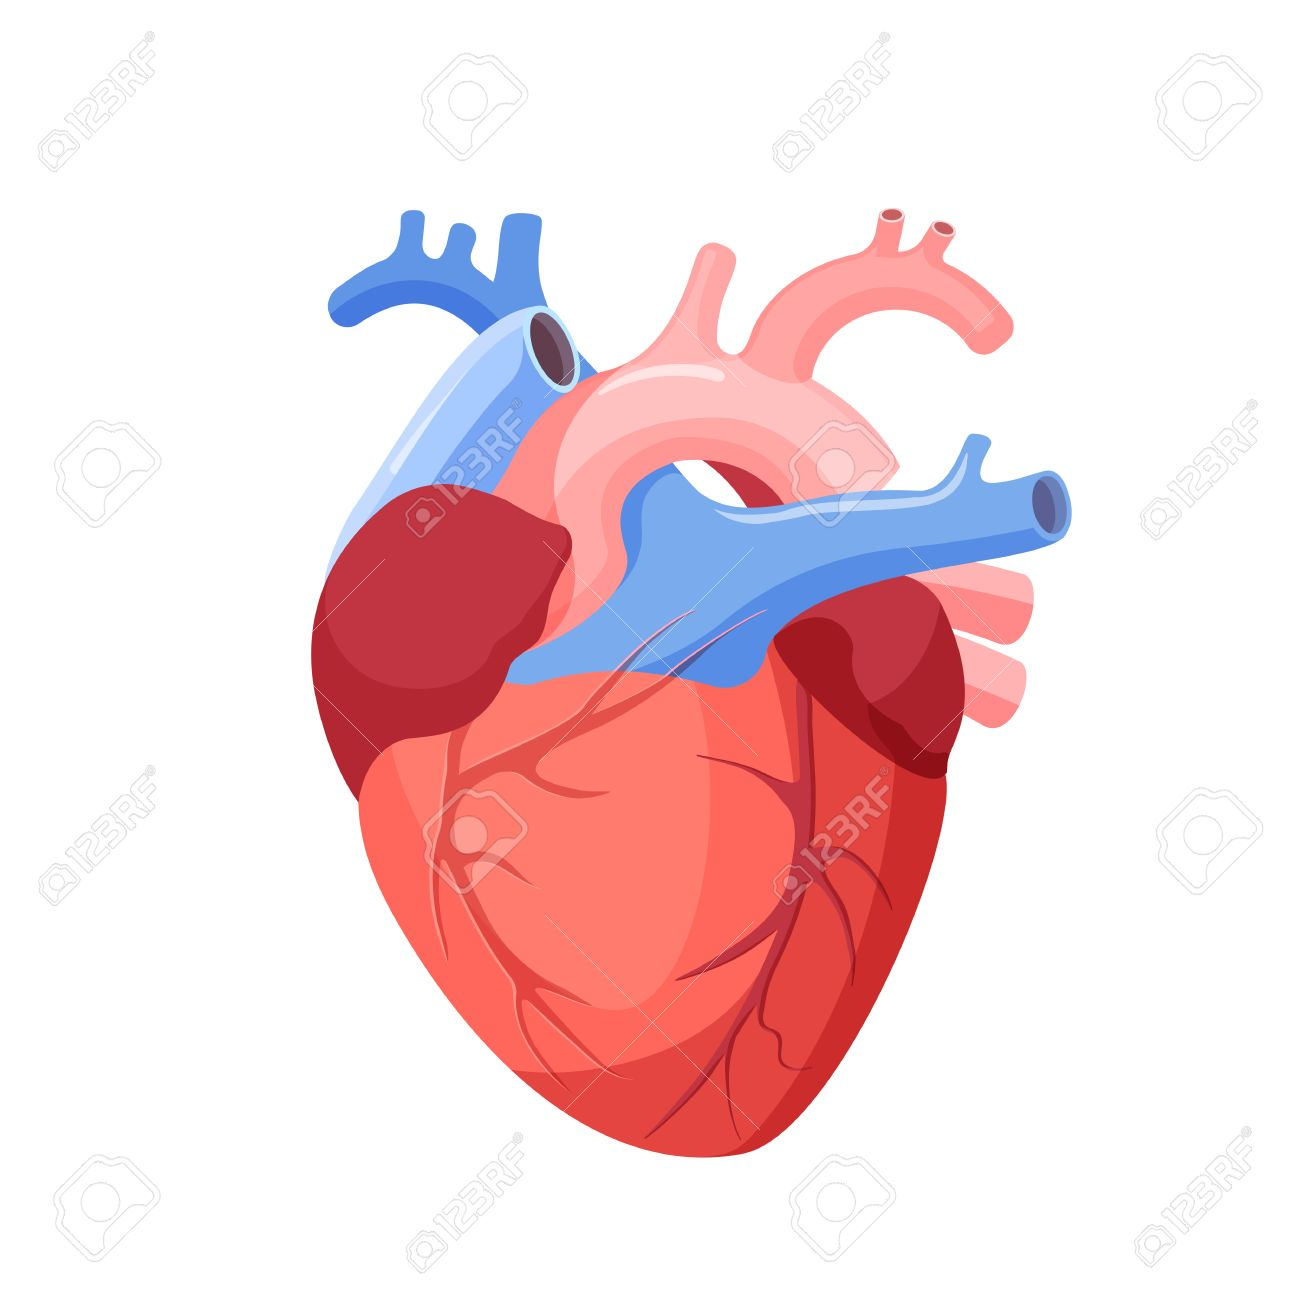 Anatomical heart isolated. Muscular organ in humans and animals, which pumps blood through blood vessels of circulatory system. Heart diagnostic center sign. Human heart cartoon design. Vector - 68502513